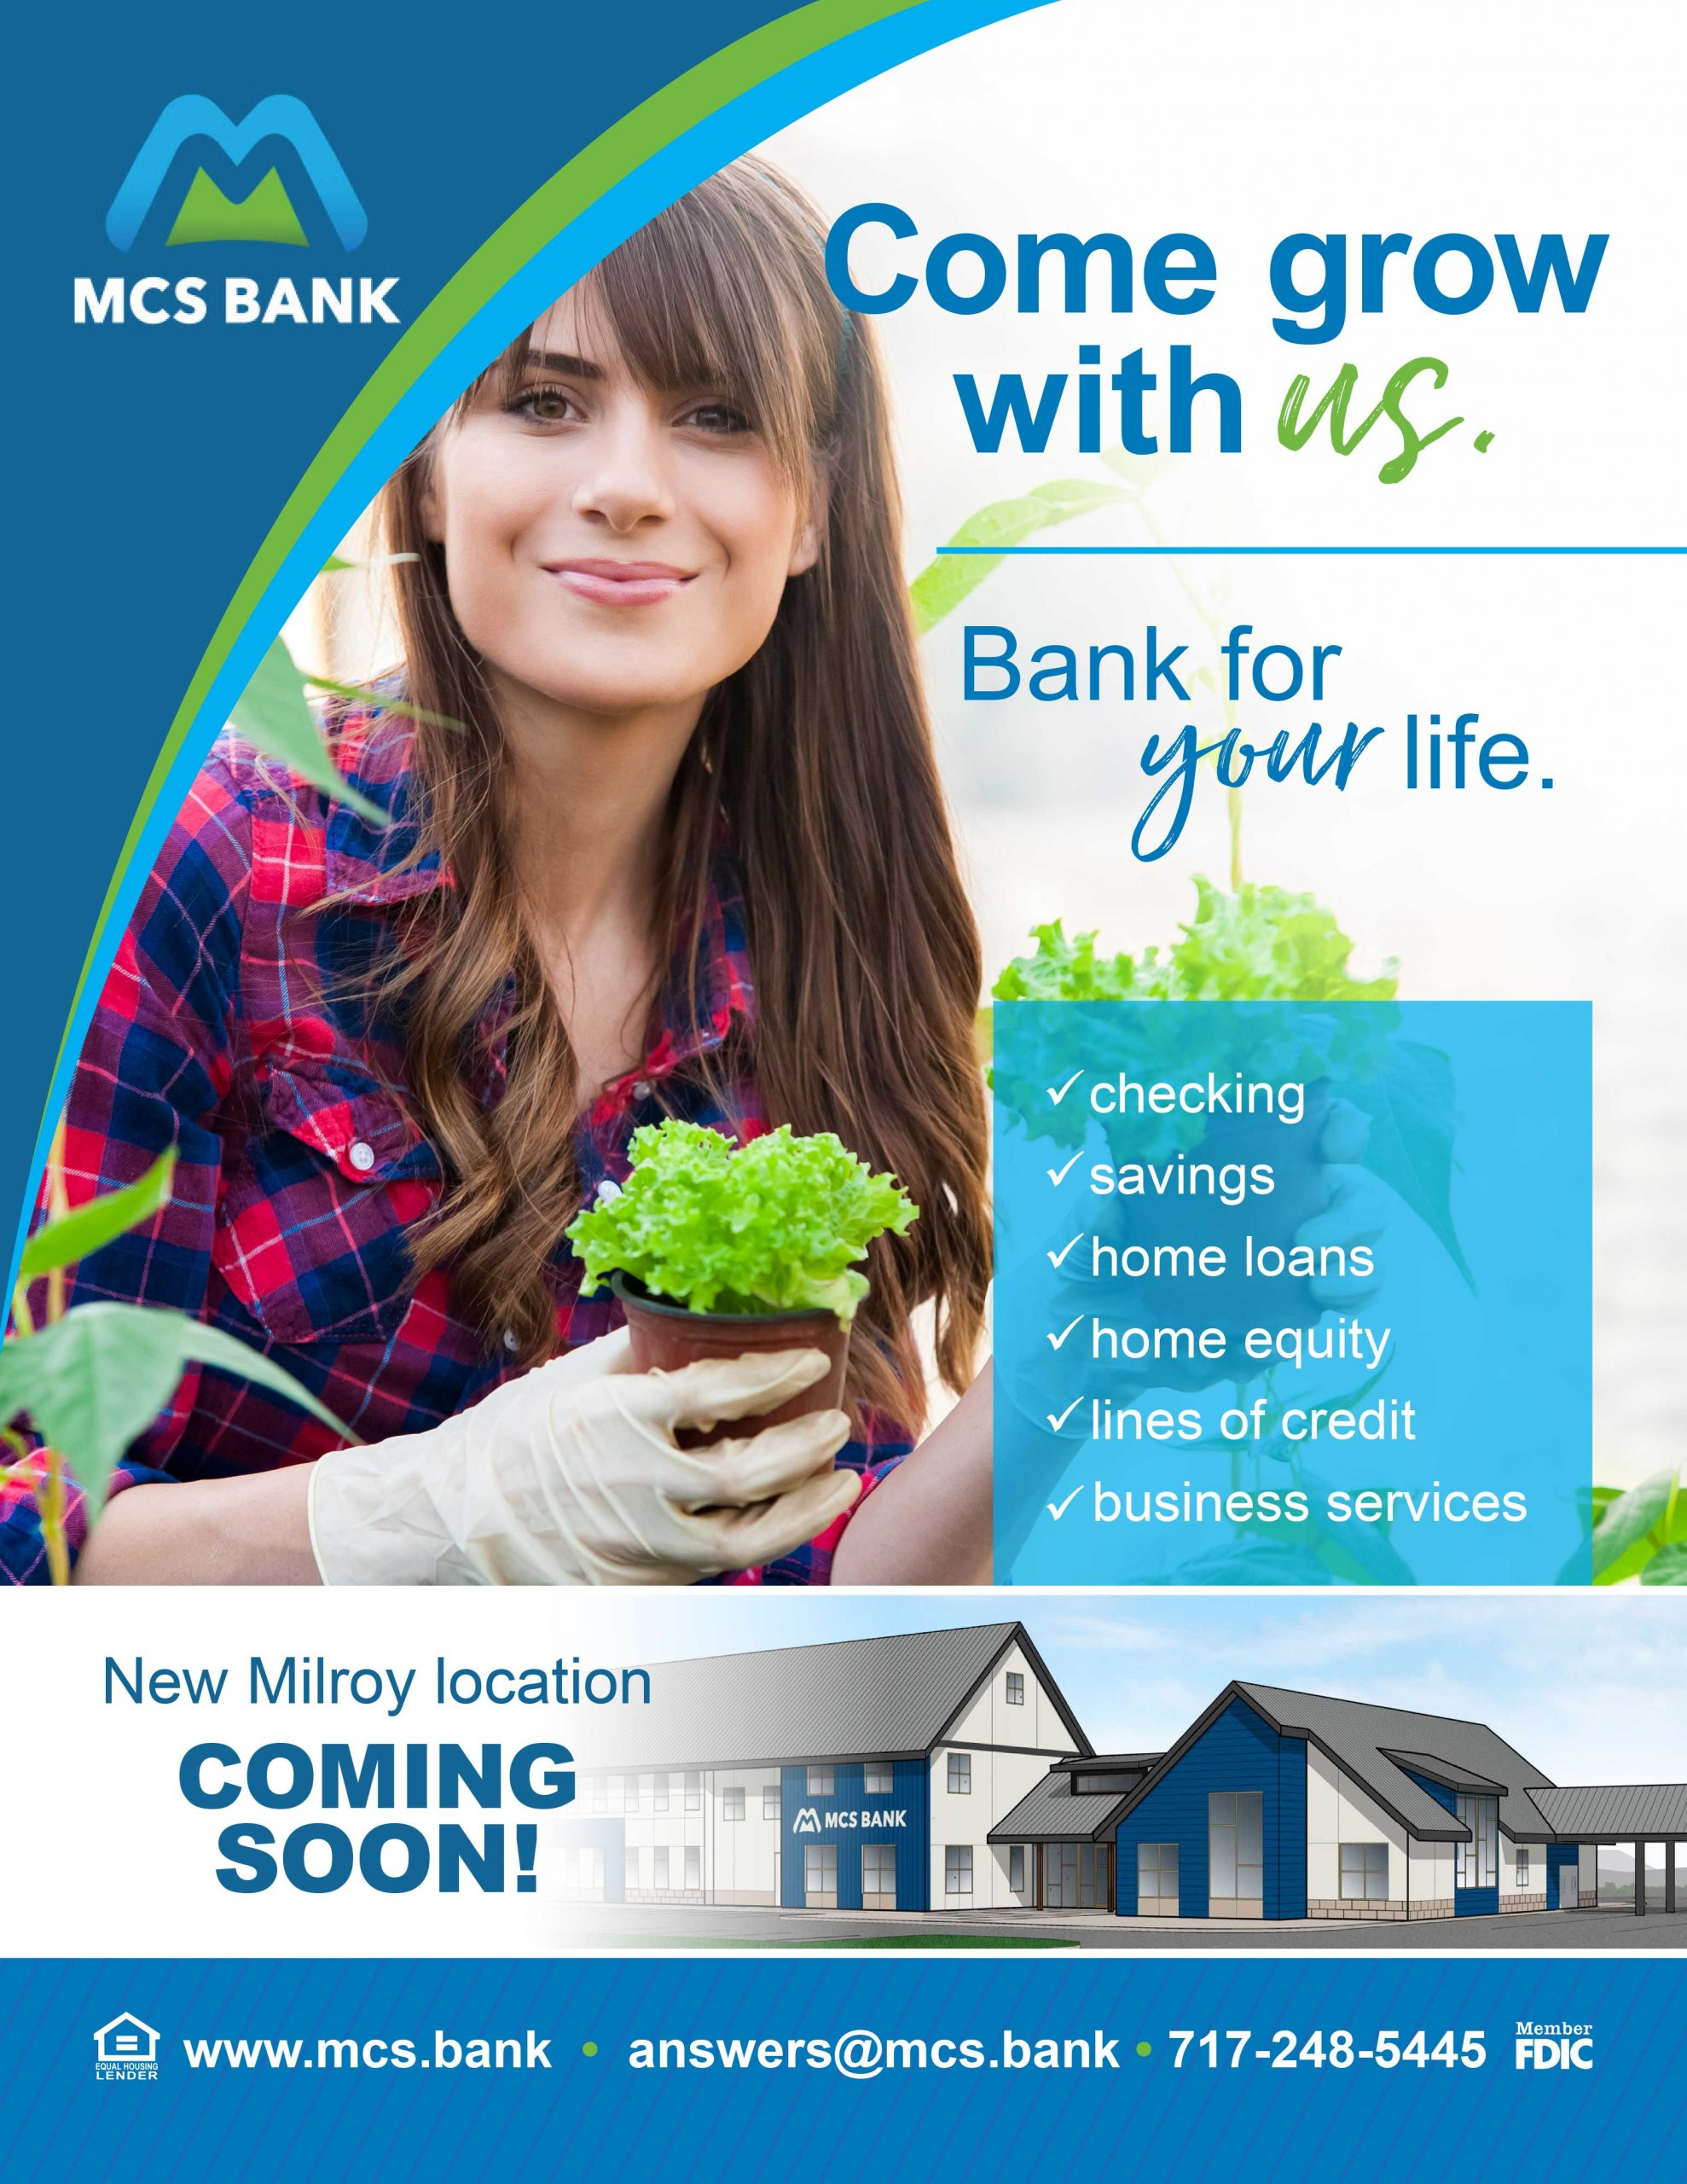 "<center>MCS Bank | <b><a href=""https://www.mcs.bank"" target=""_blank"" rel=""noopener noreferrer"">CLICK HERE to view the website</a>"